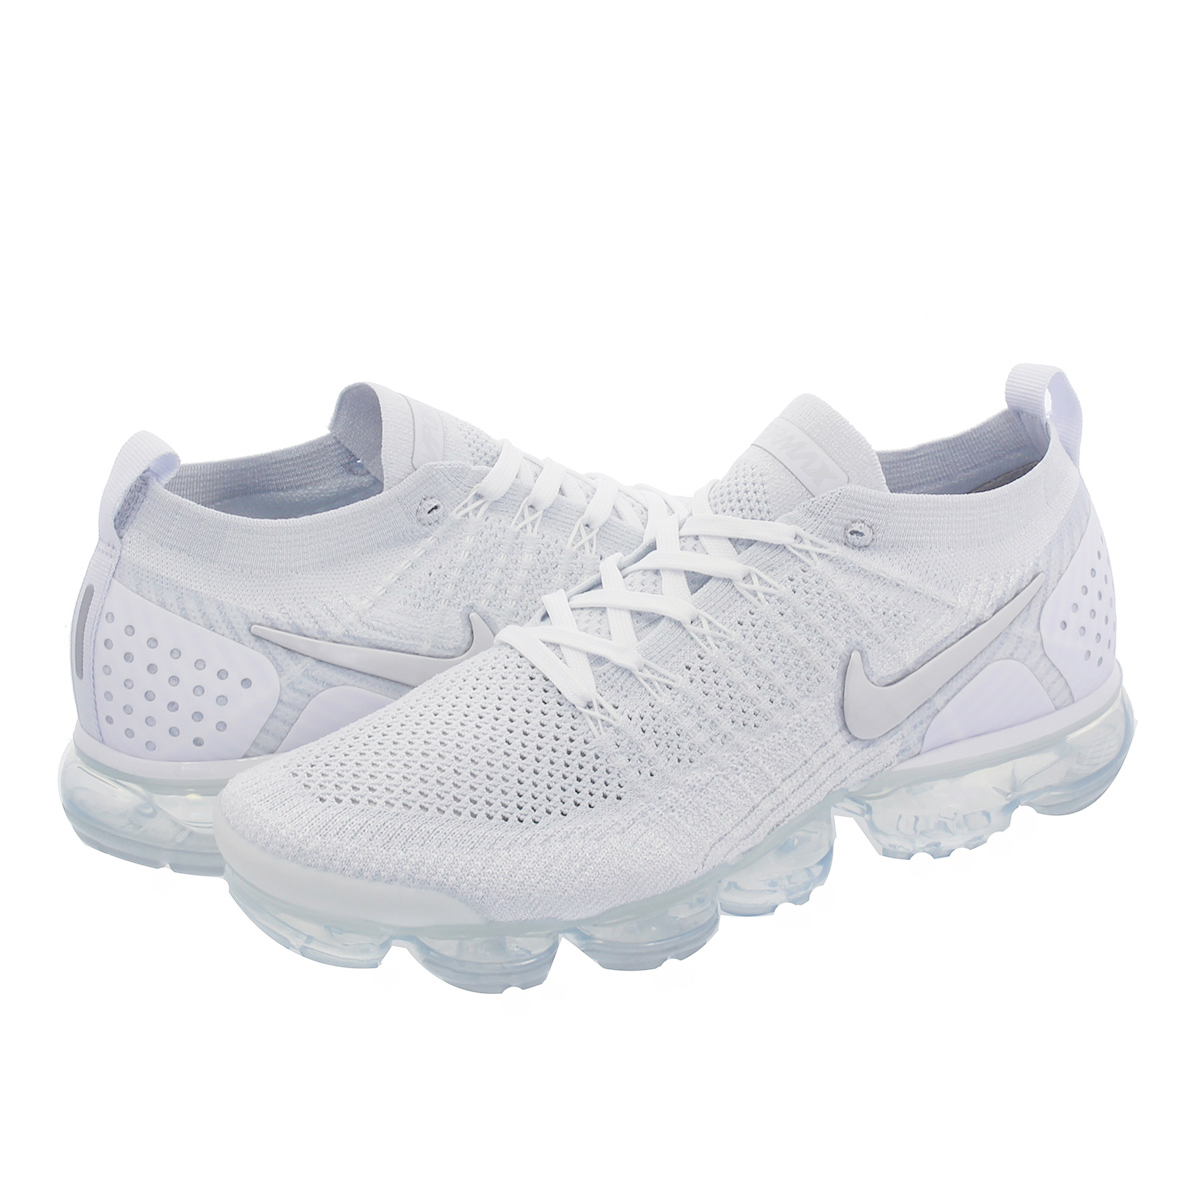 quality design 1808f 55c2d NIKE AIR VAPORMAX FLYKNIT 2 Nike vapor max fried food knit 2 WHITE/VAST  GREY/FOOTBALL GREY 942,842-105